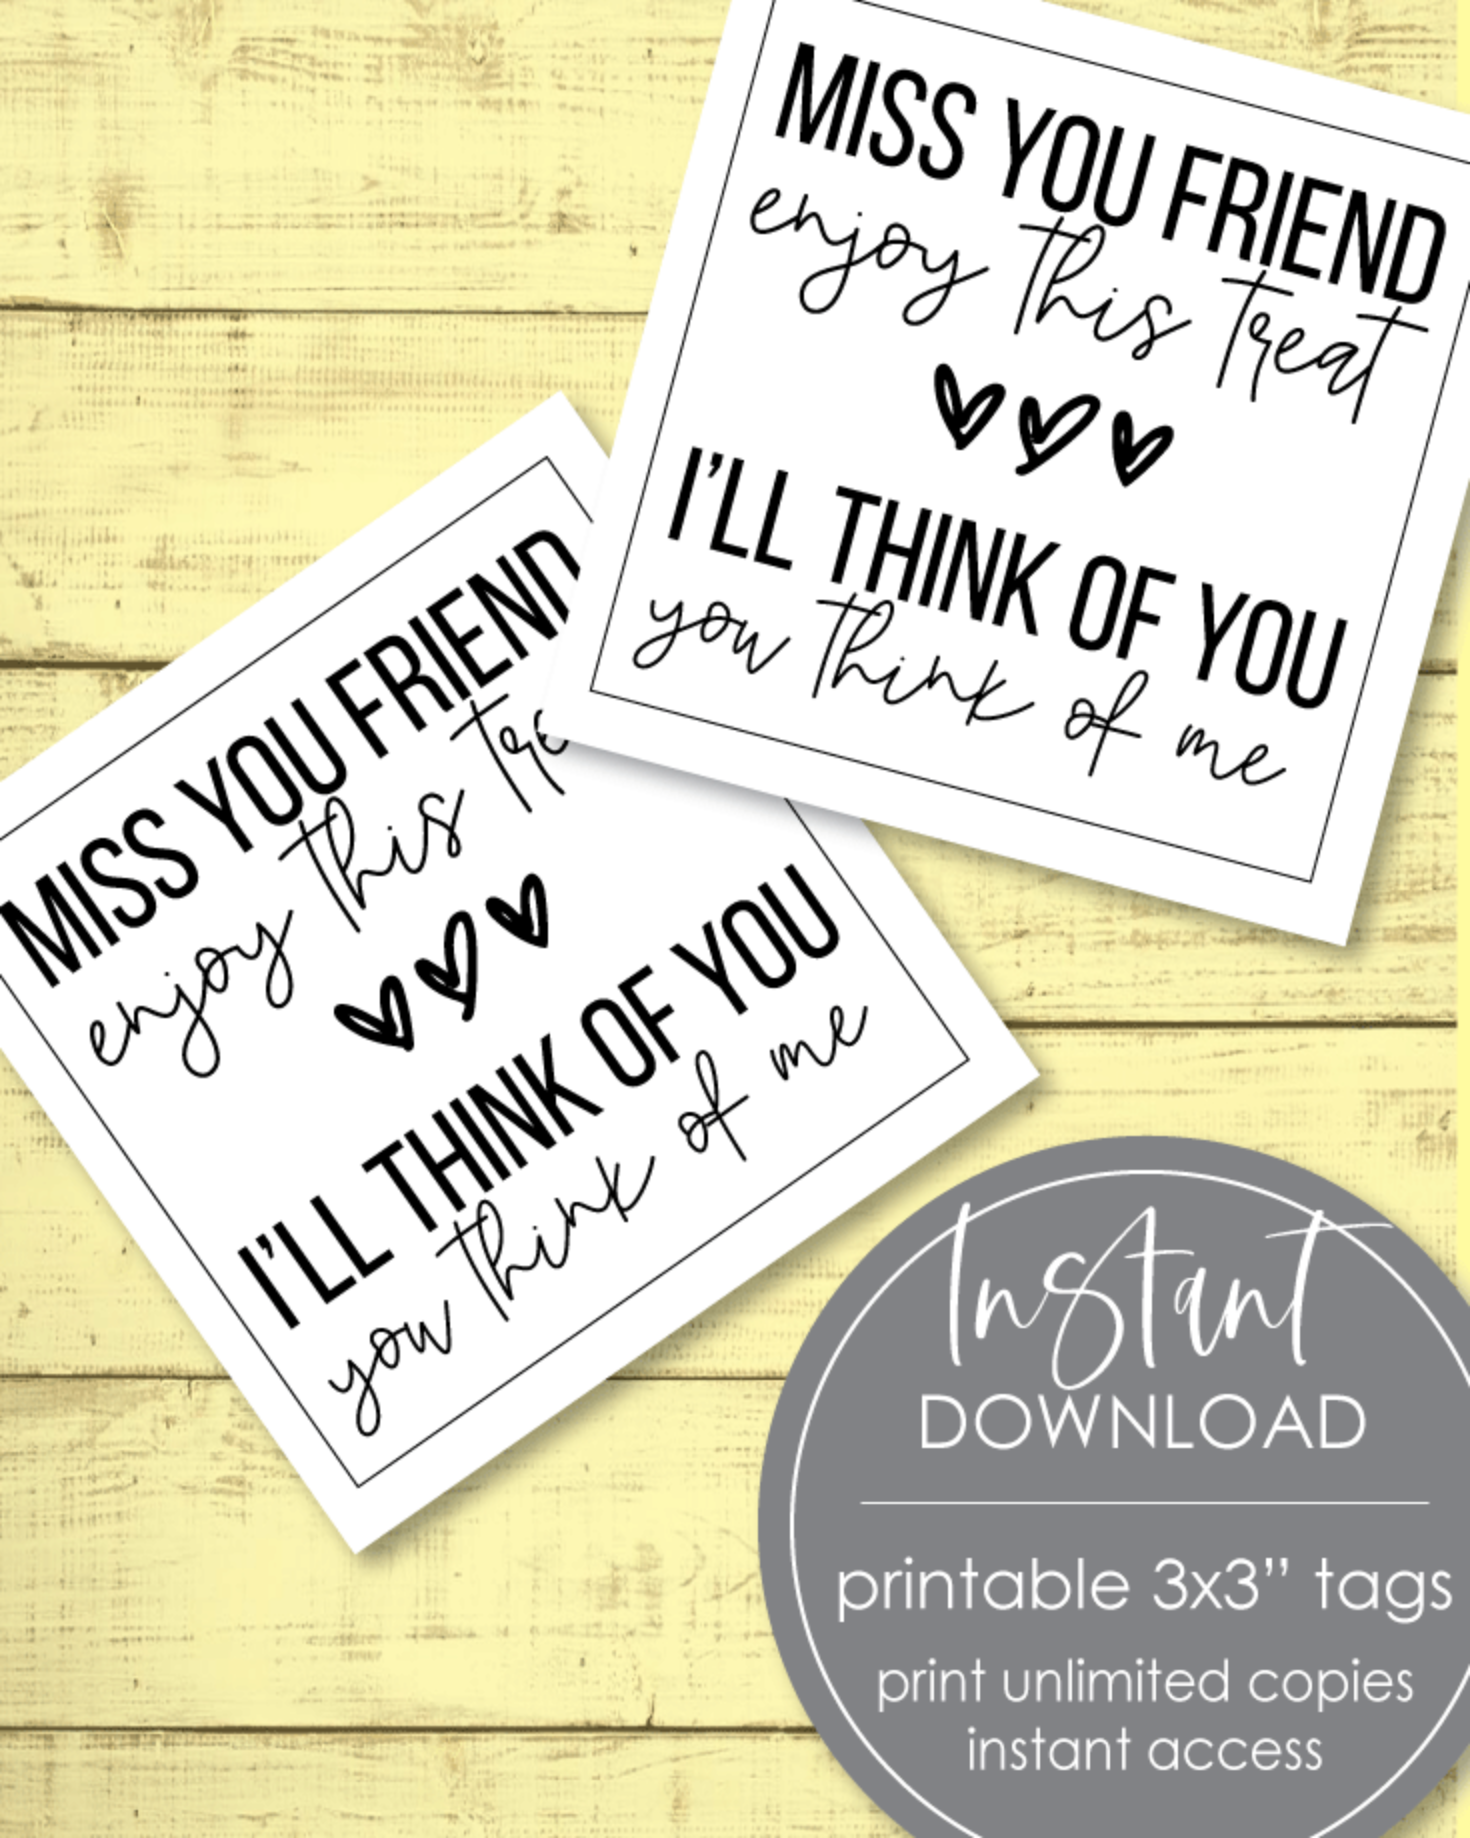 Printable Miss You Friend Tags - 3x3